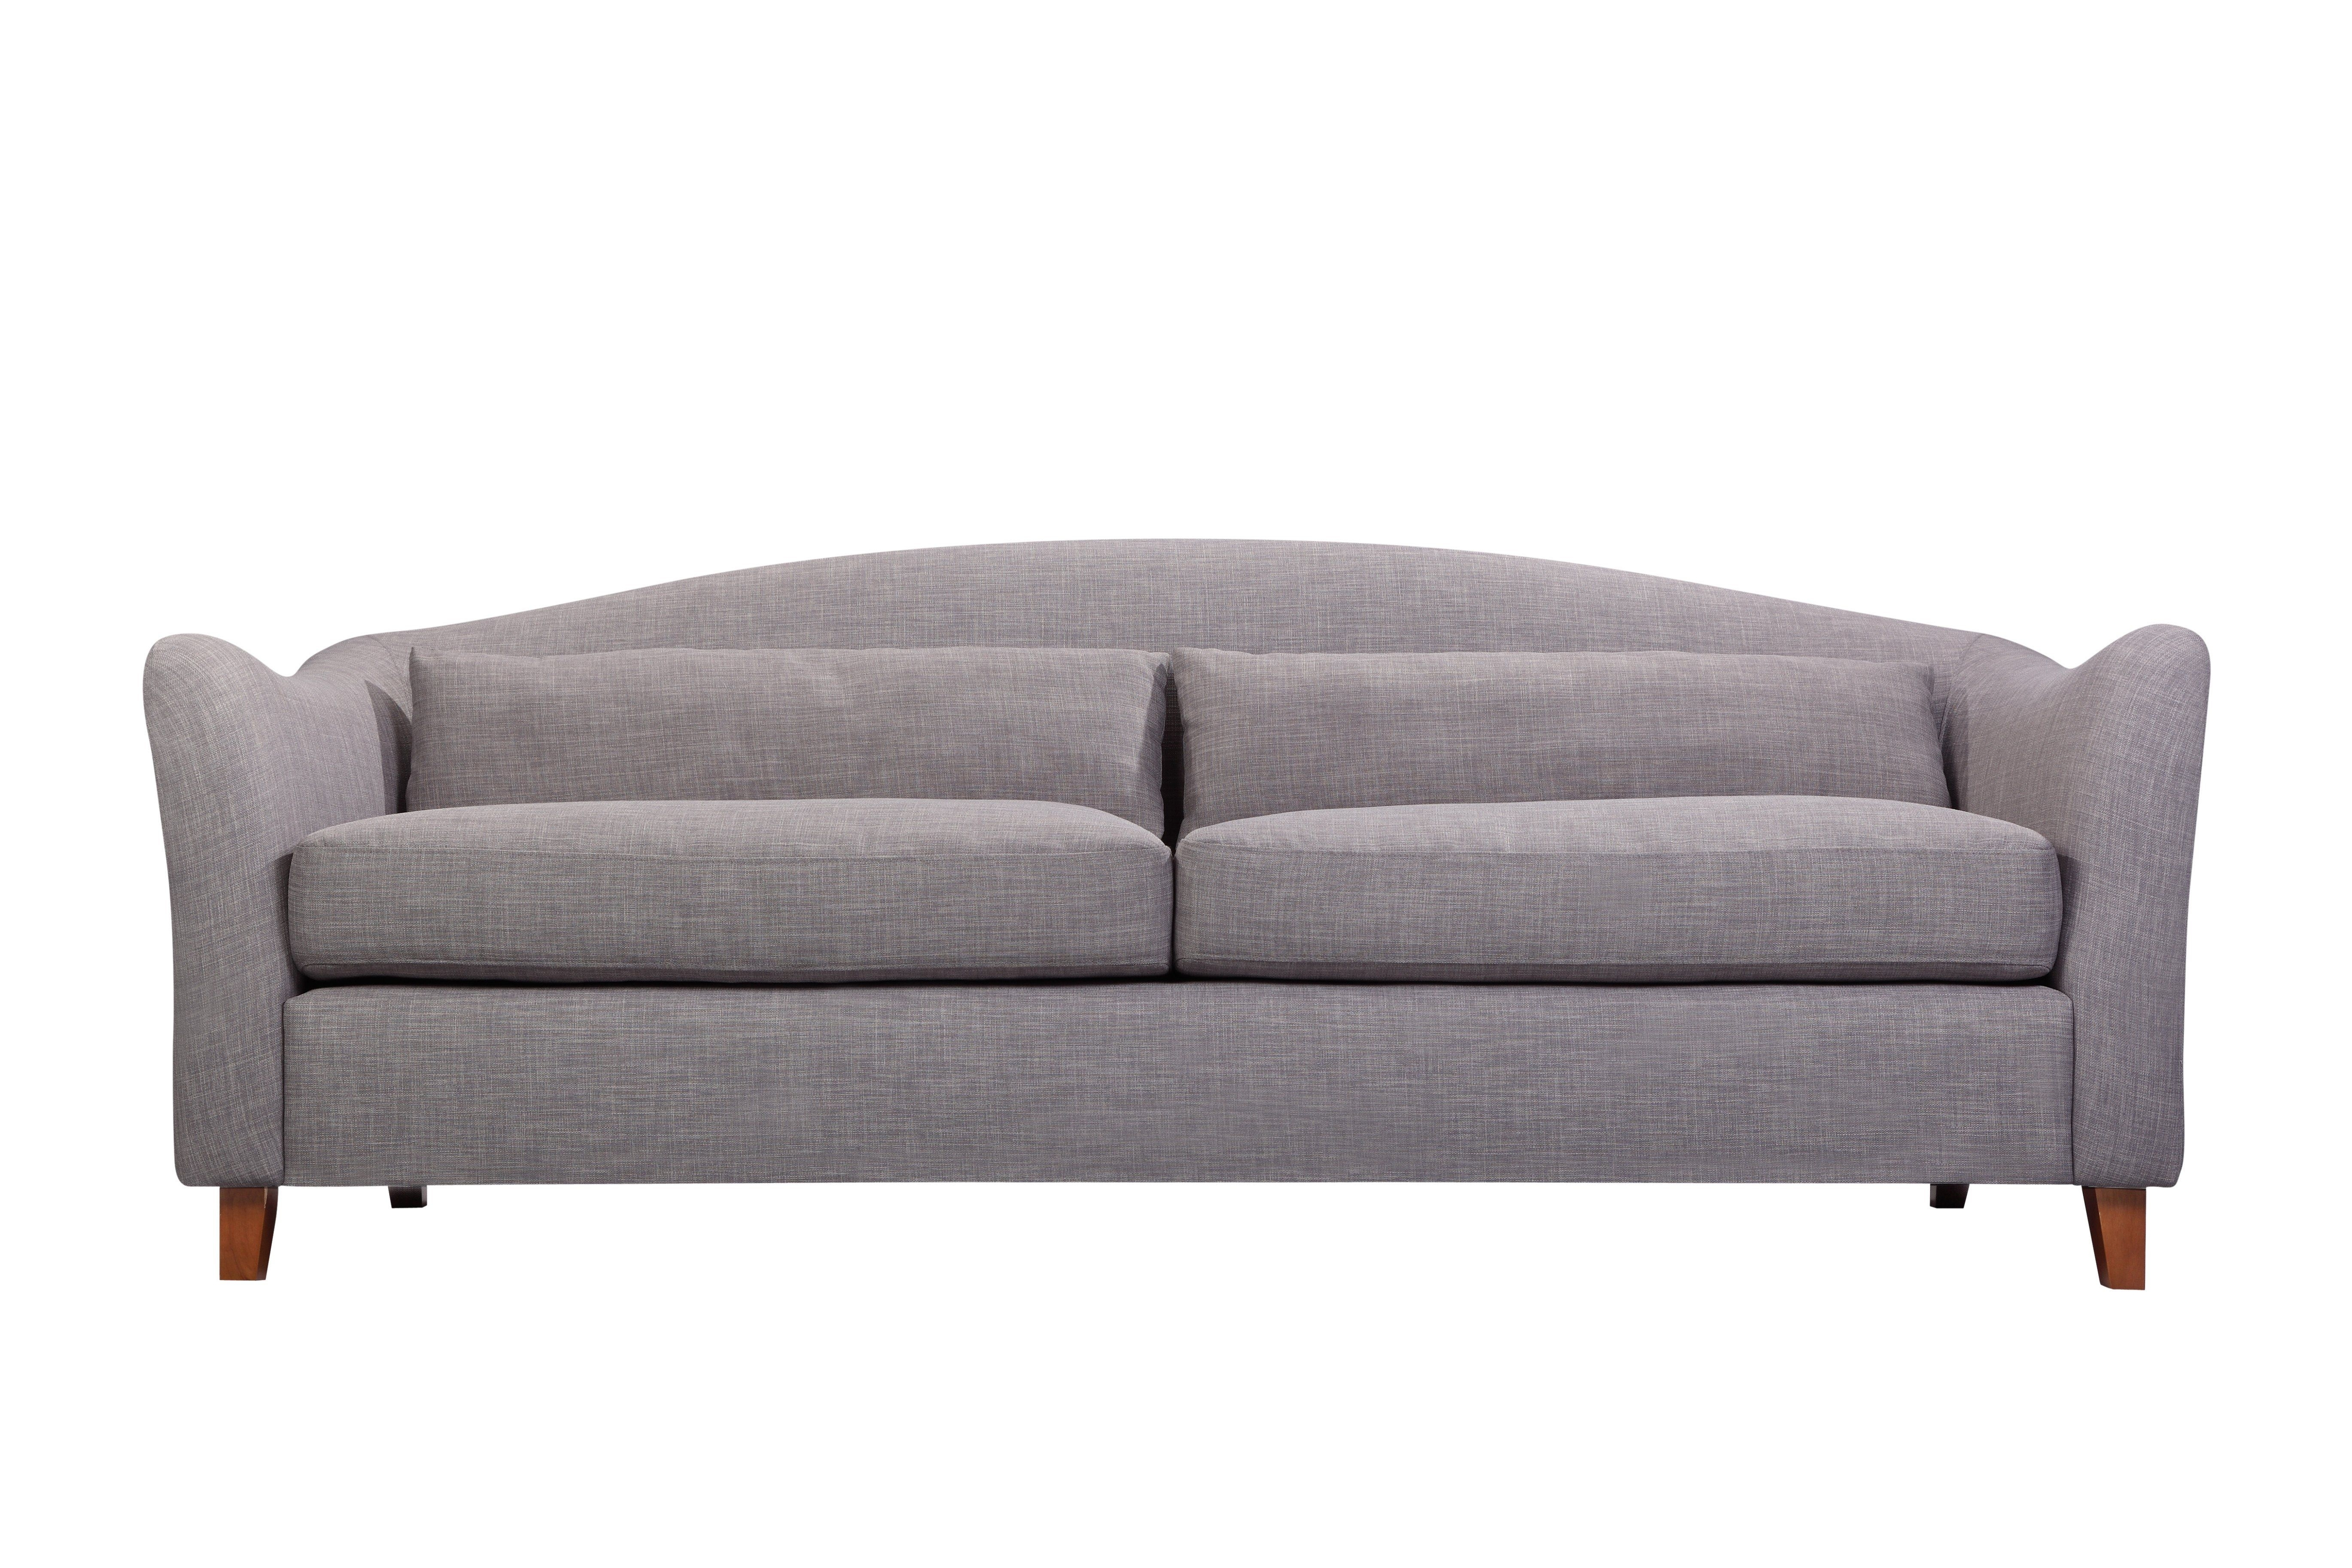 Collin Sofa | Products Intended For Collins Sofa Sectionals With Reversible Chaise (Image 6 of 25)